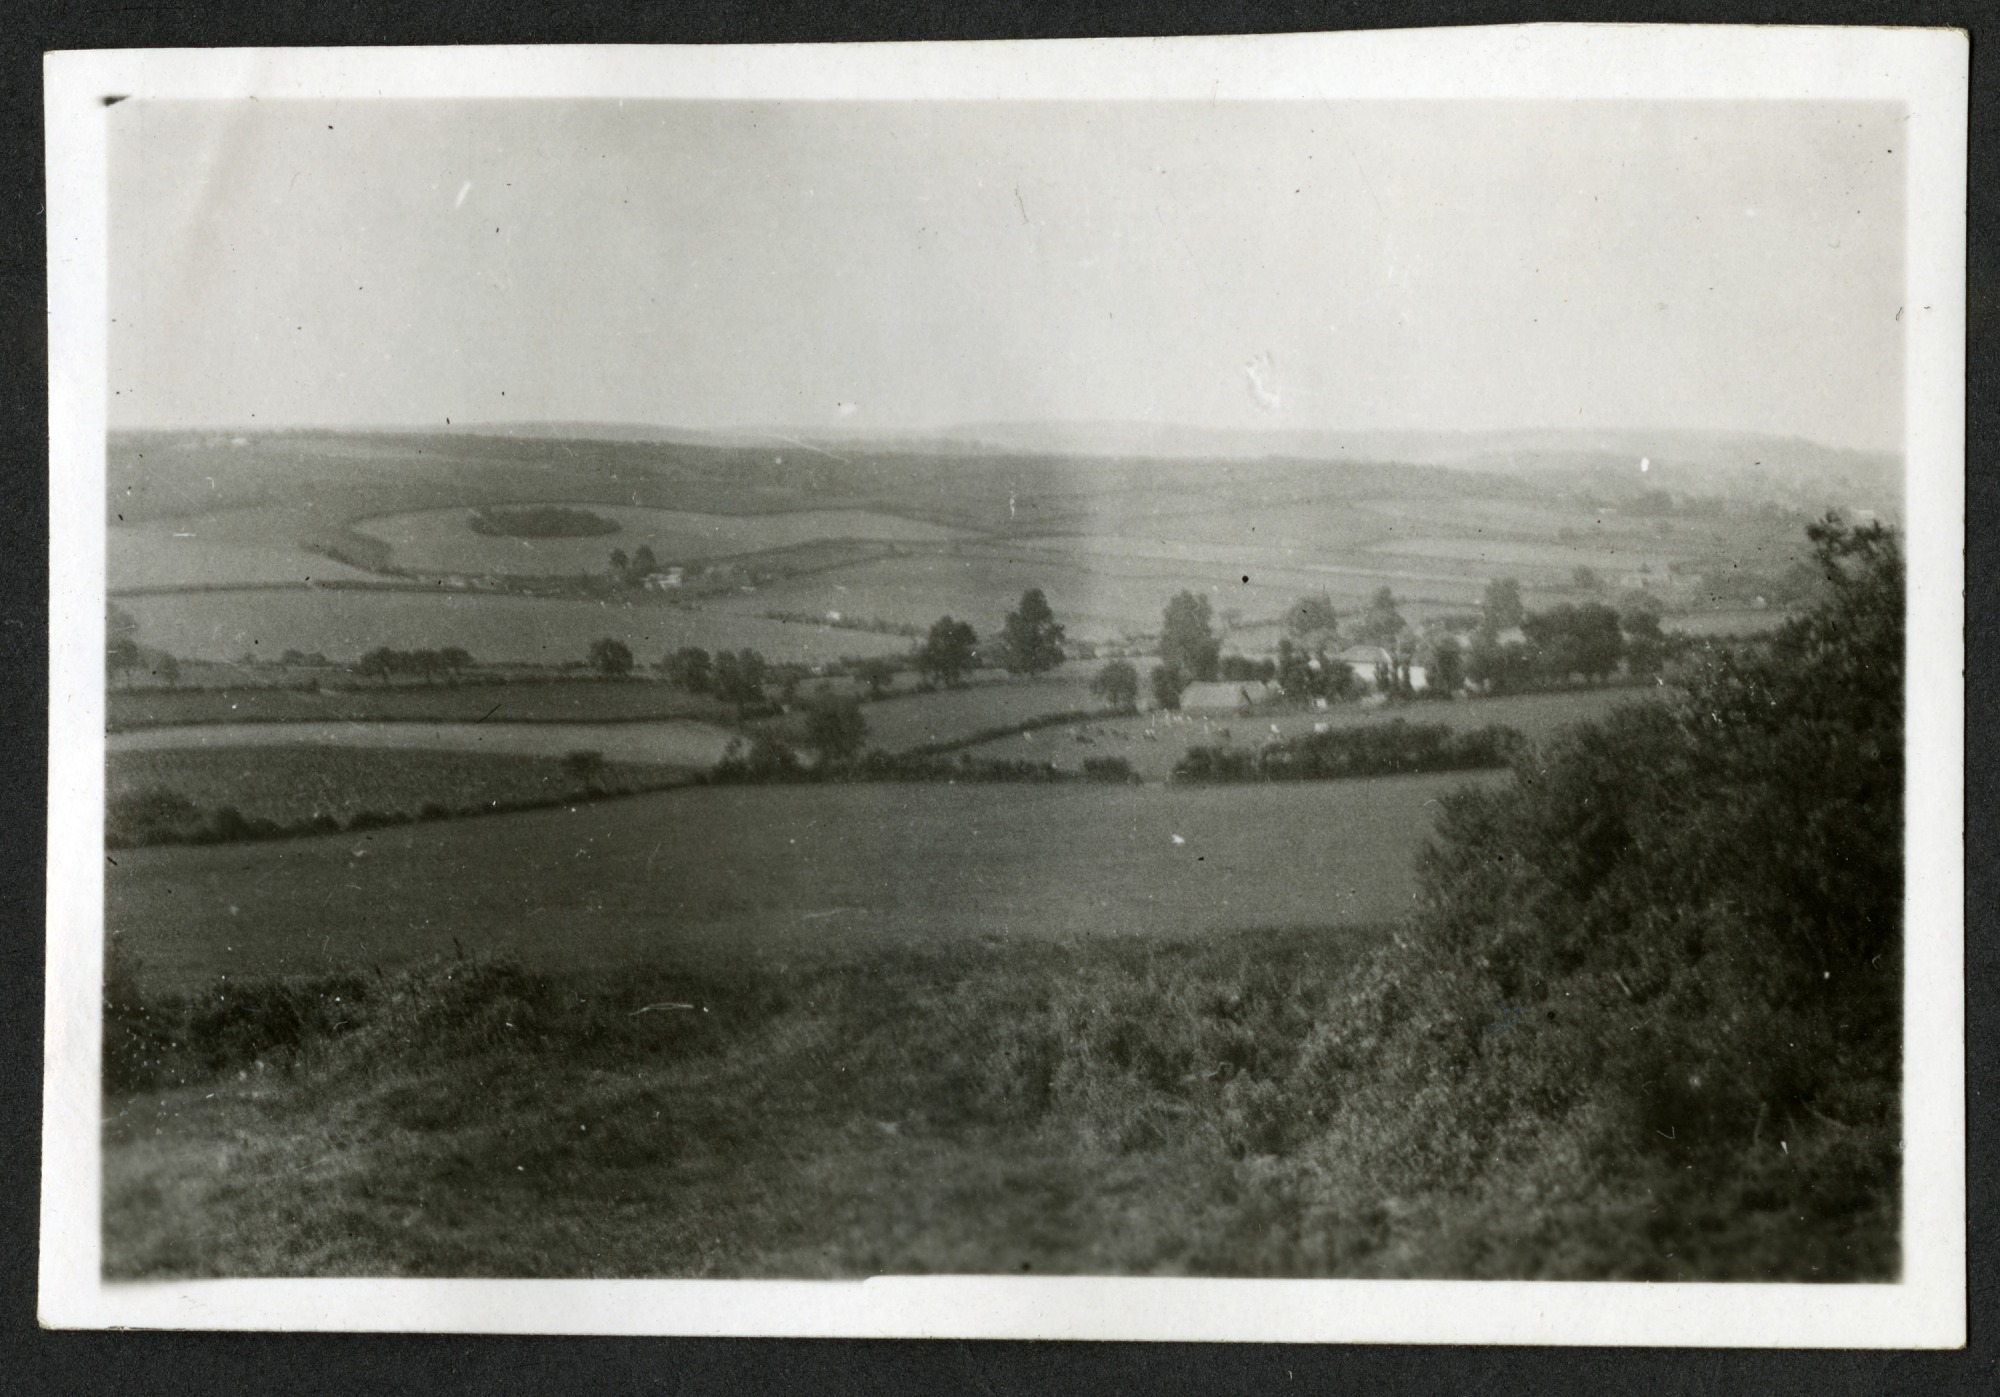 English Countryside, 1925, Smithsonian Institution Archives, SIA RU007091 [SIA2015-003205].